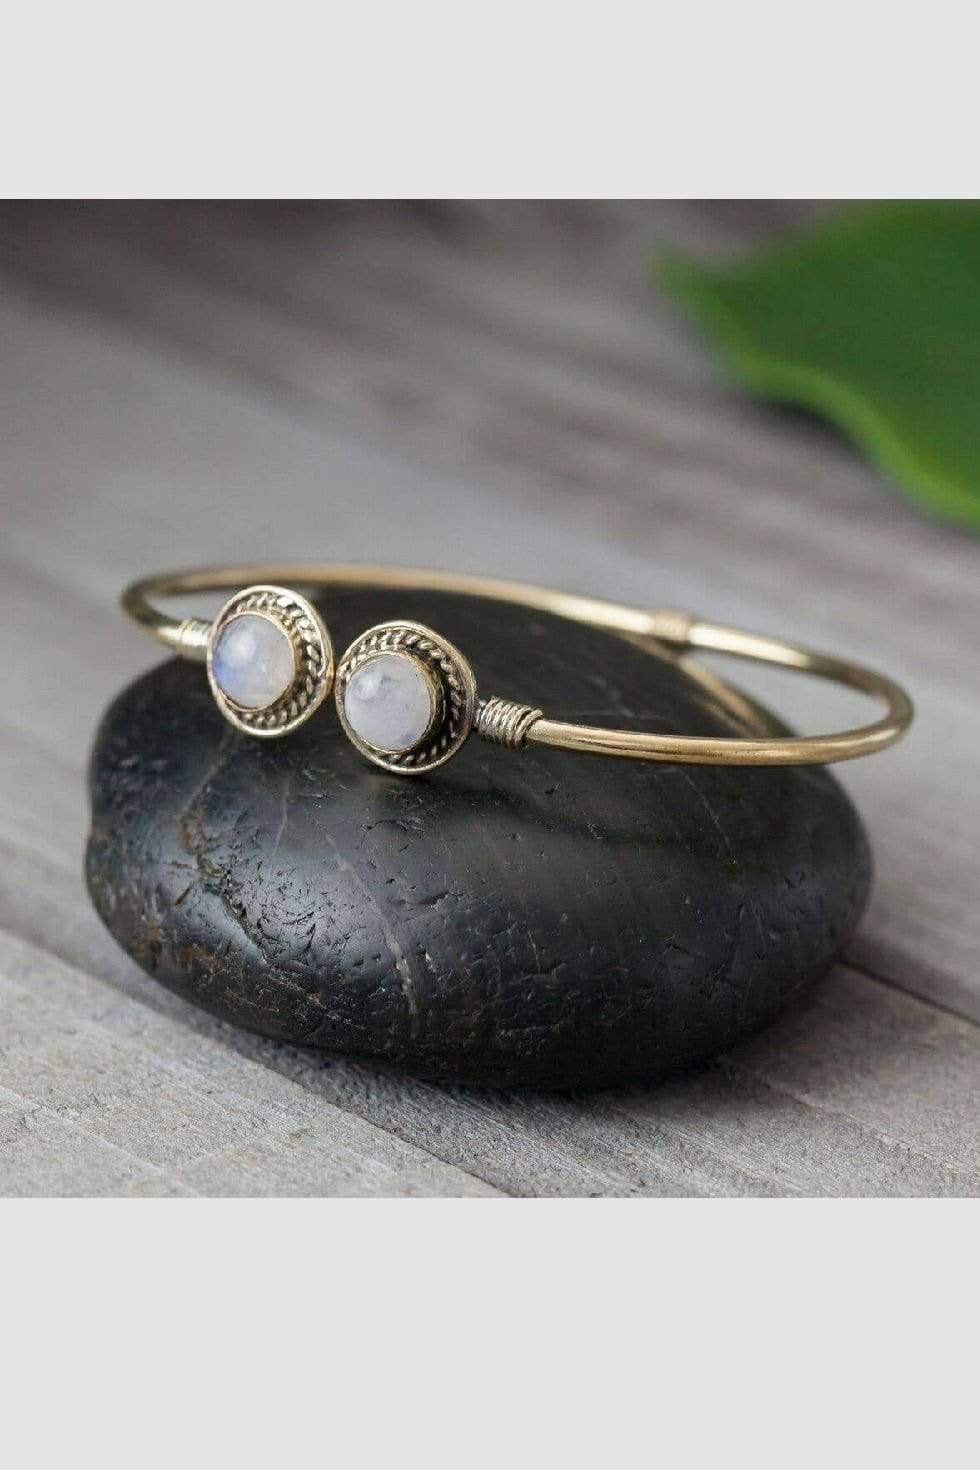 BRACELET Brass Double Stone Bangle Bracelet Moonstone - Chloe Dao